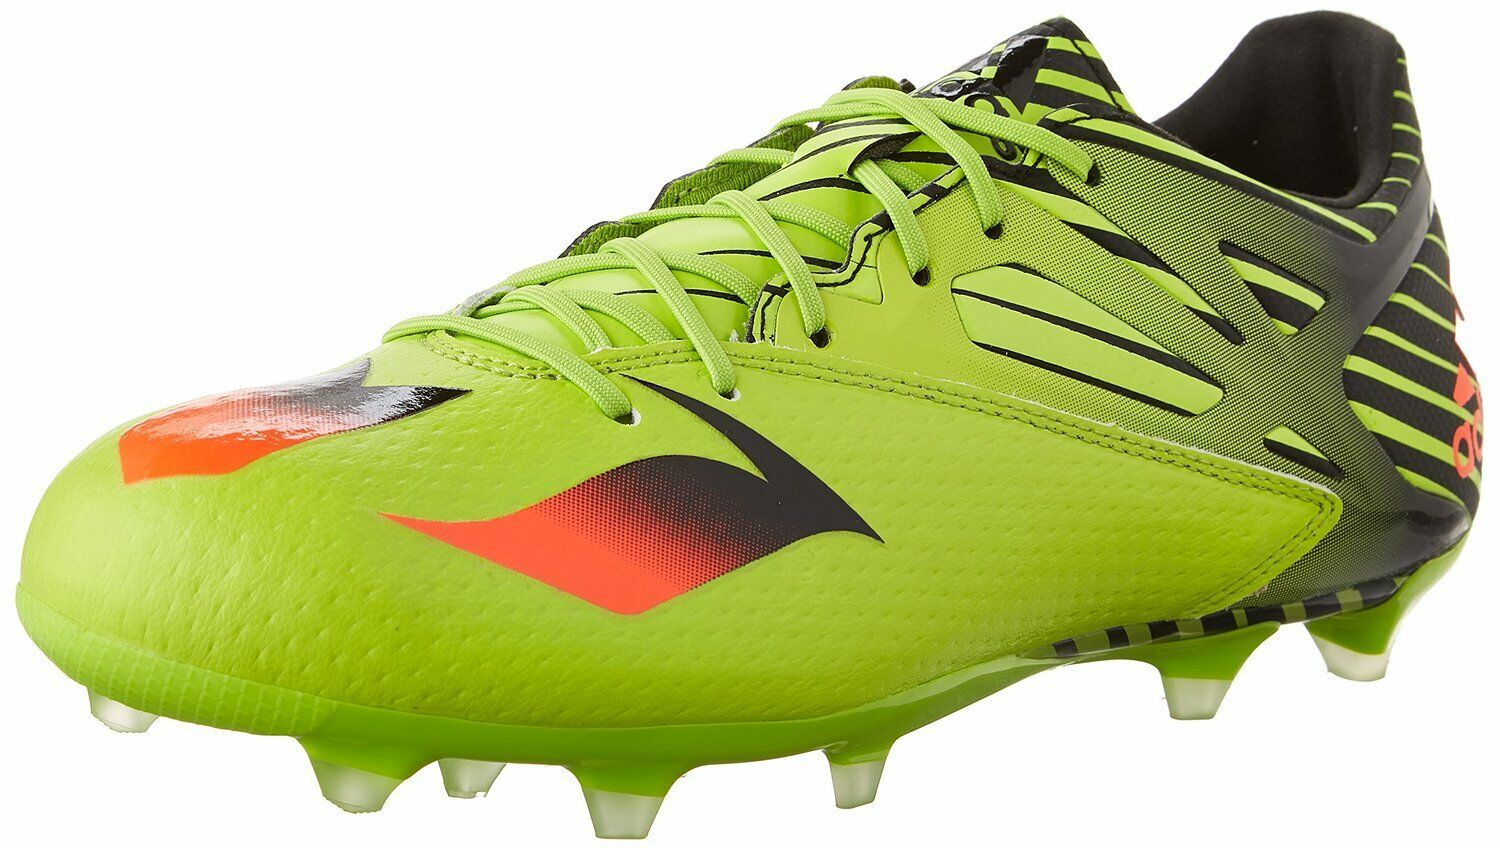 Adidas 15.2 MESSI 15.2-M Performance  Uomo Messi 15.2 Adidas Soccer Schuhe- Choose SZ/Farbe. 7ab0de